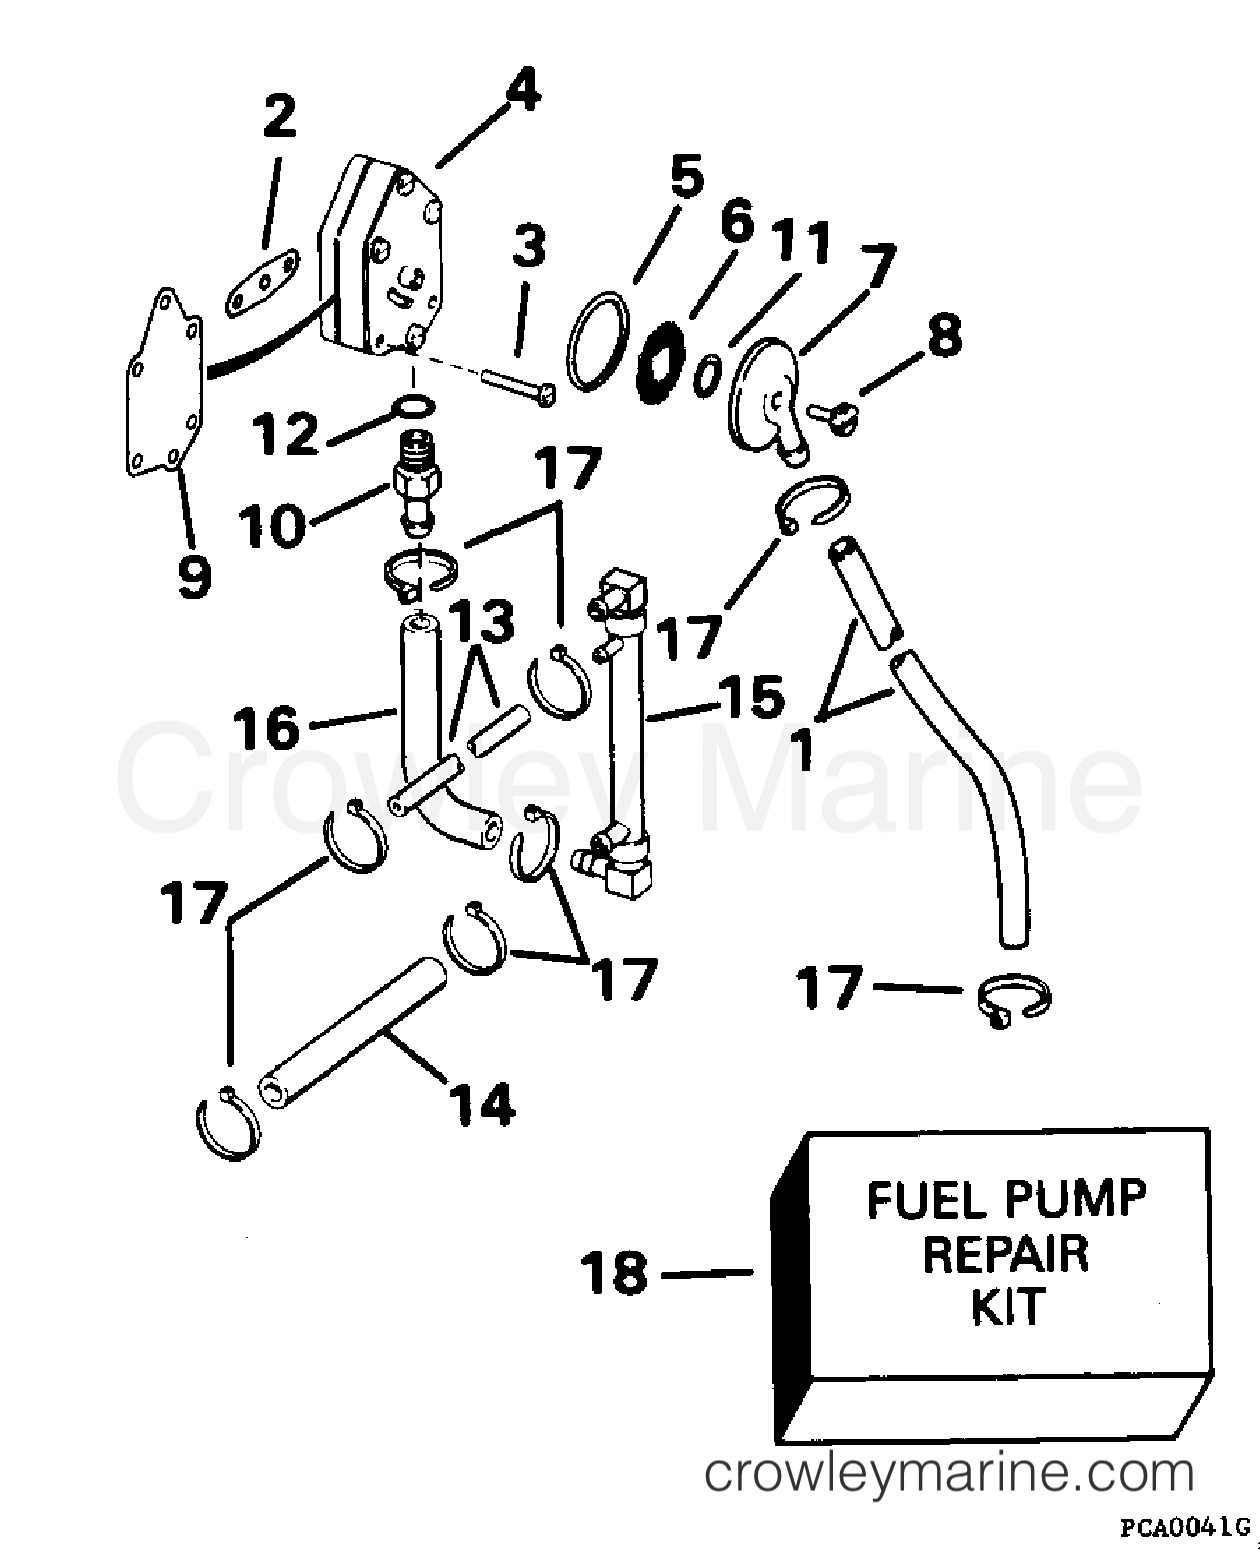 1995 Evinrude Outboards 112 - XE112TSLEOC - FUEL PUMP section